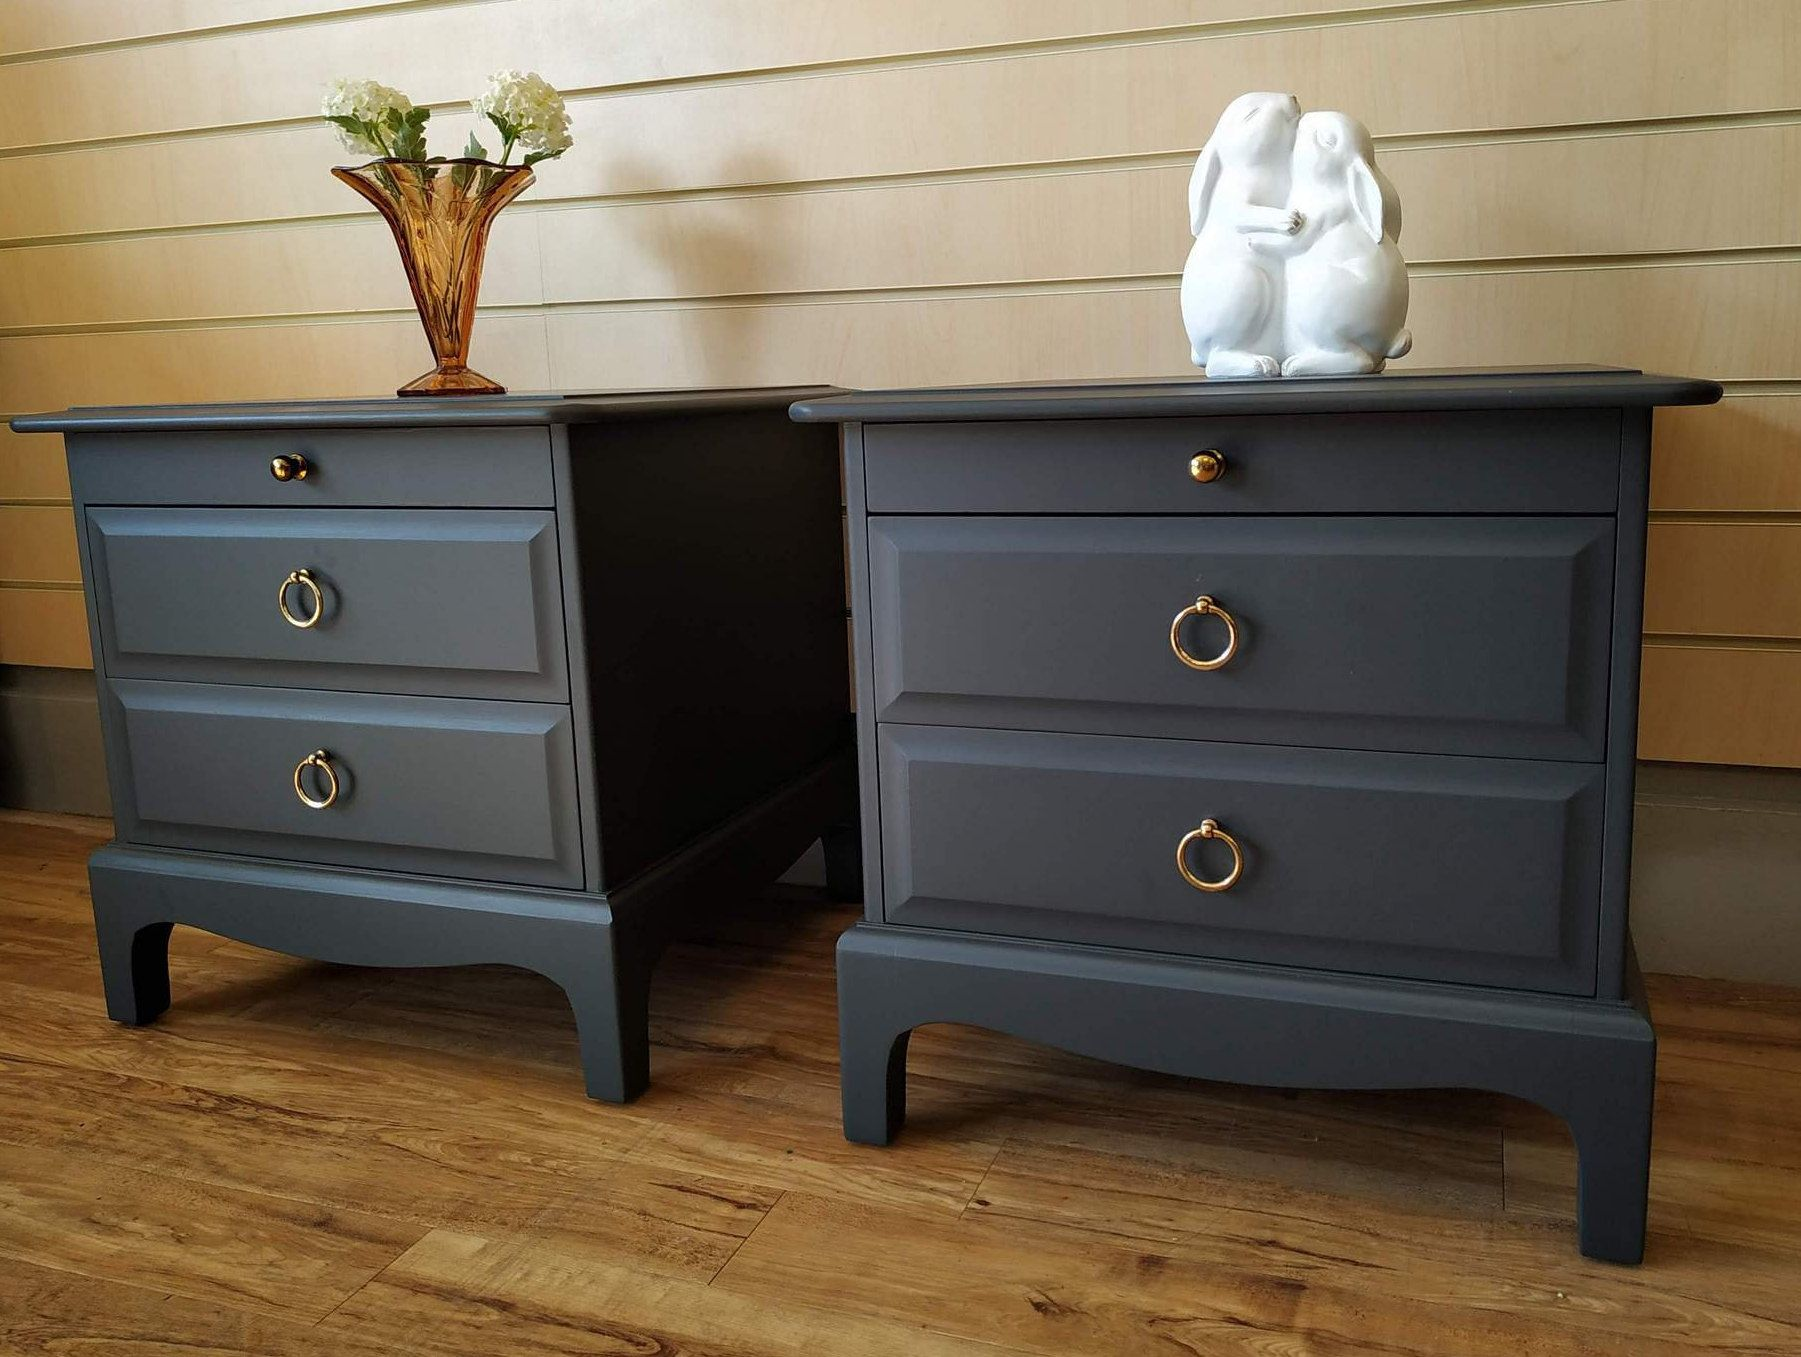 Sold Stag Minstrel Pair Vintage Retro Bedside Tables Cabinets Drawers Ash Grey Pull Out Slides Sold Retro Bedside Tables Upcycled Home Decor Home Decor